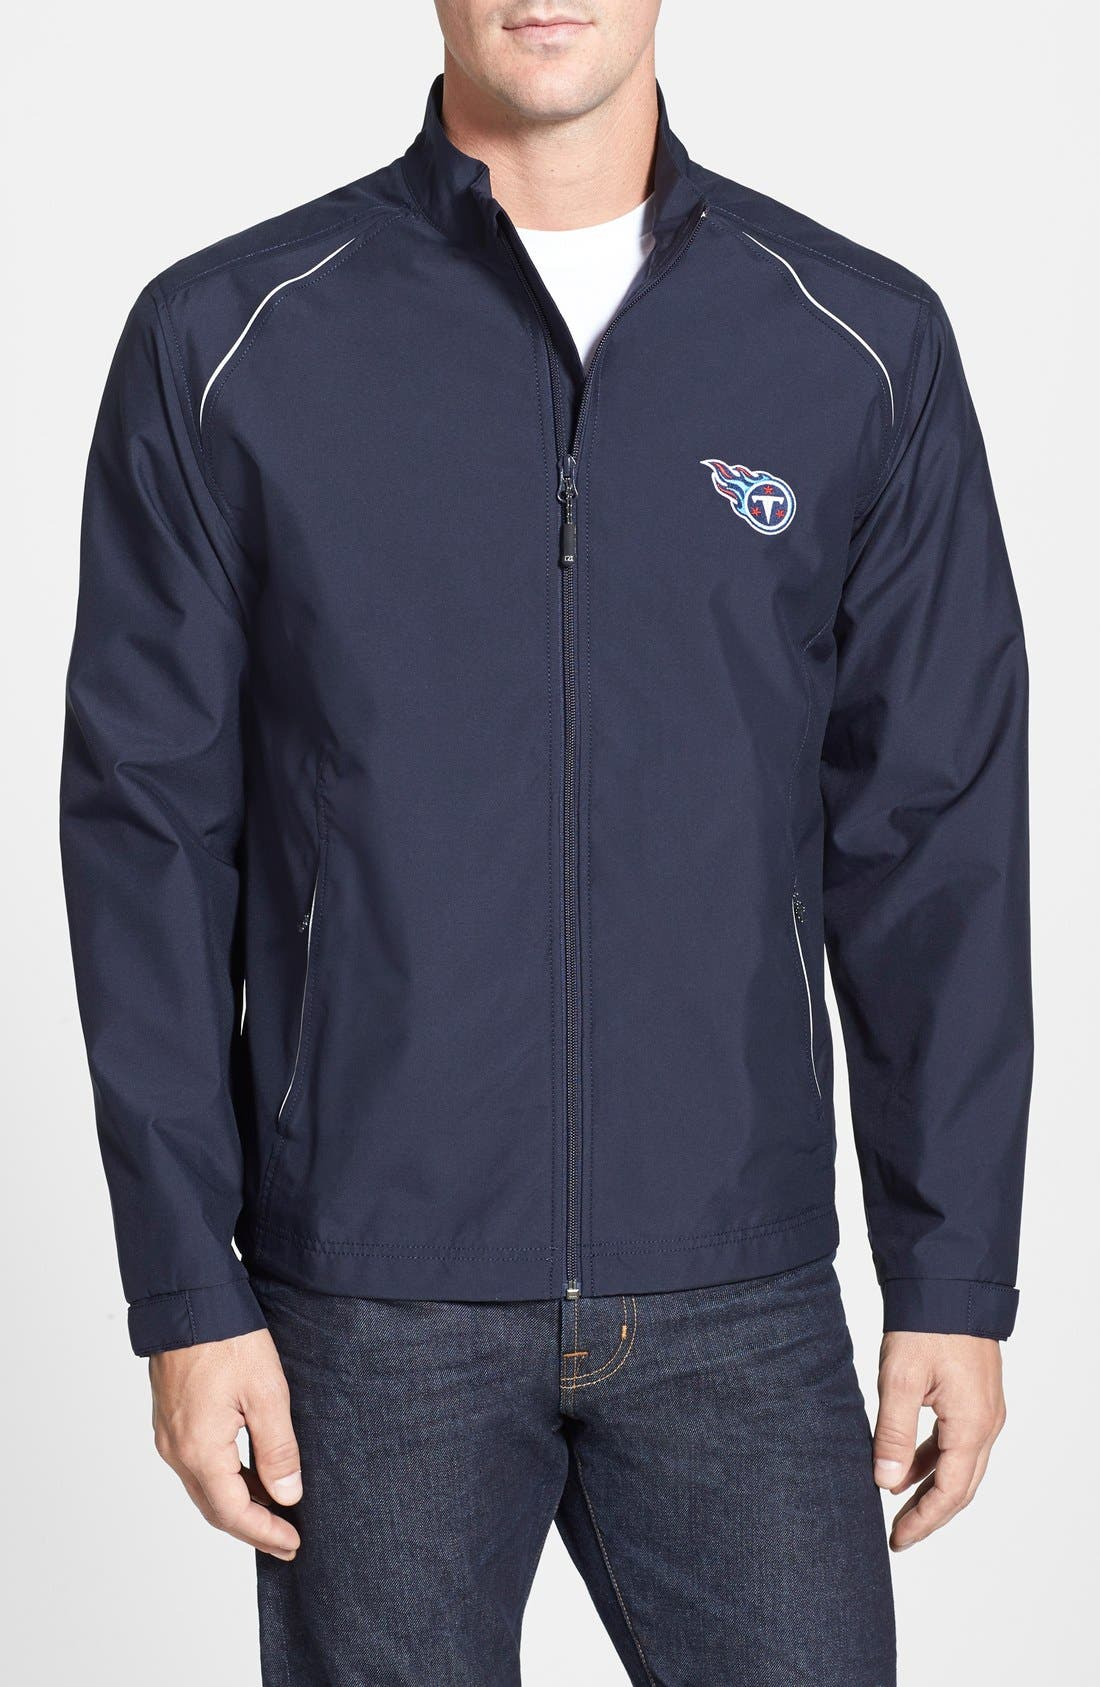 Cutter & Buck 'Tennessee Titans - Beacon' WeatherTec Wind & Water Resistant Jacket (Big & Tall)